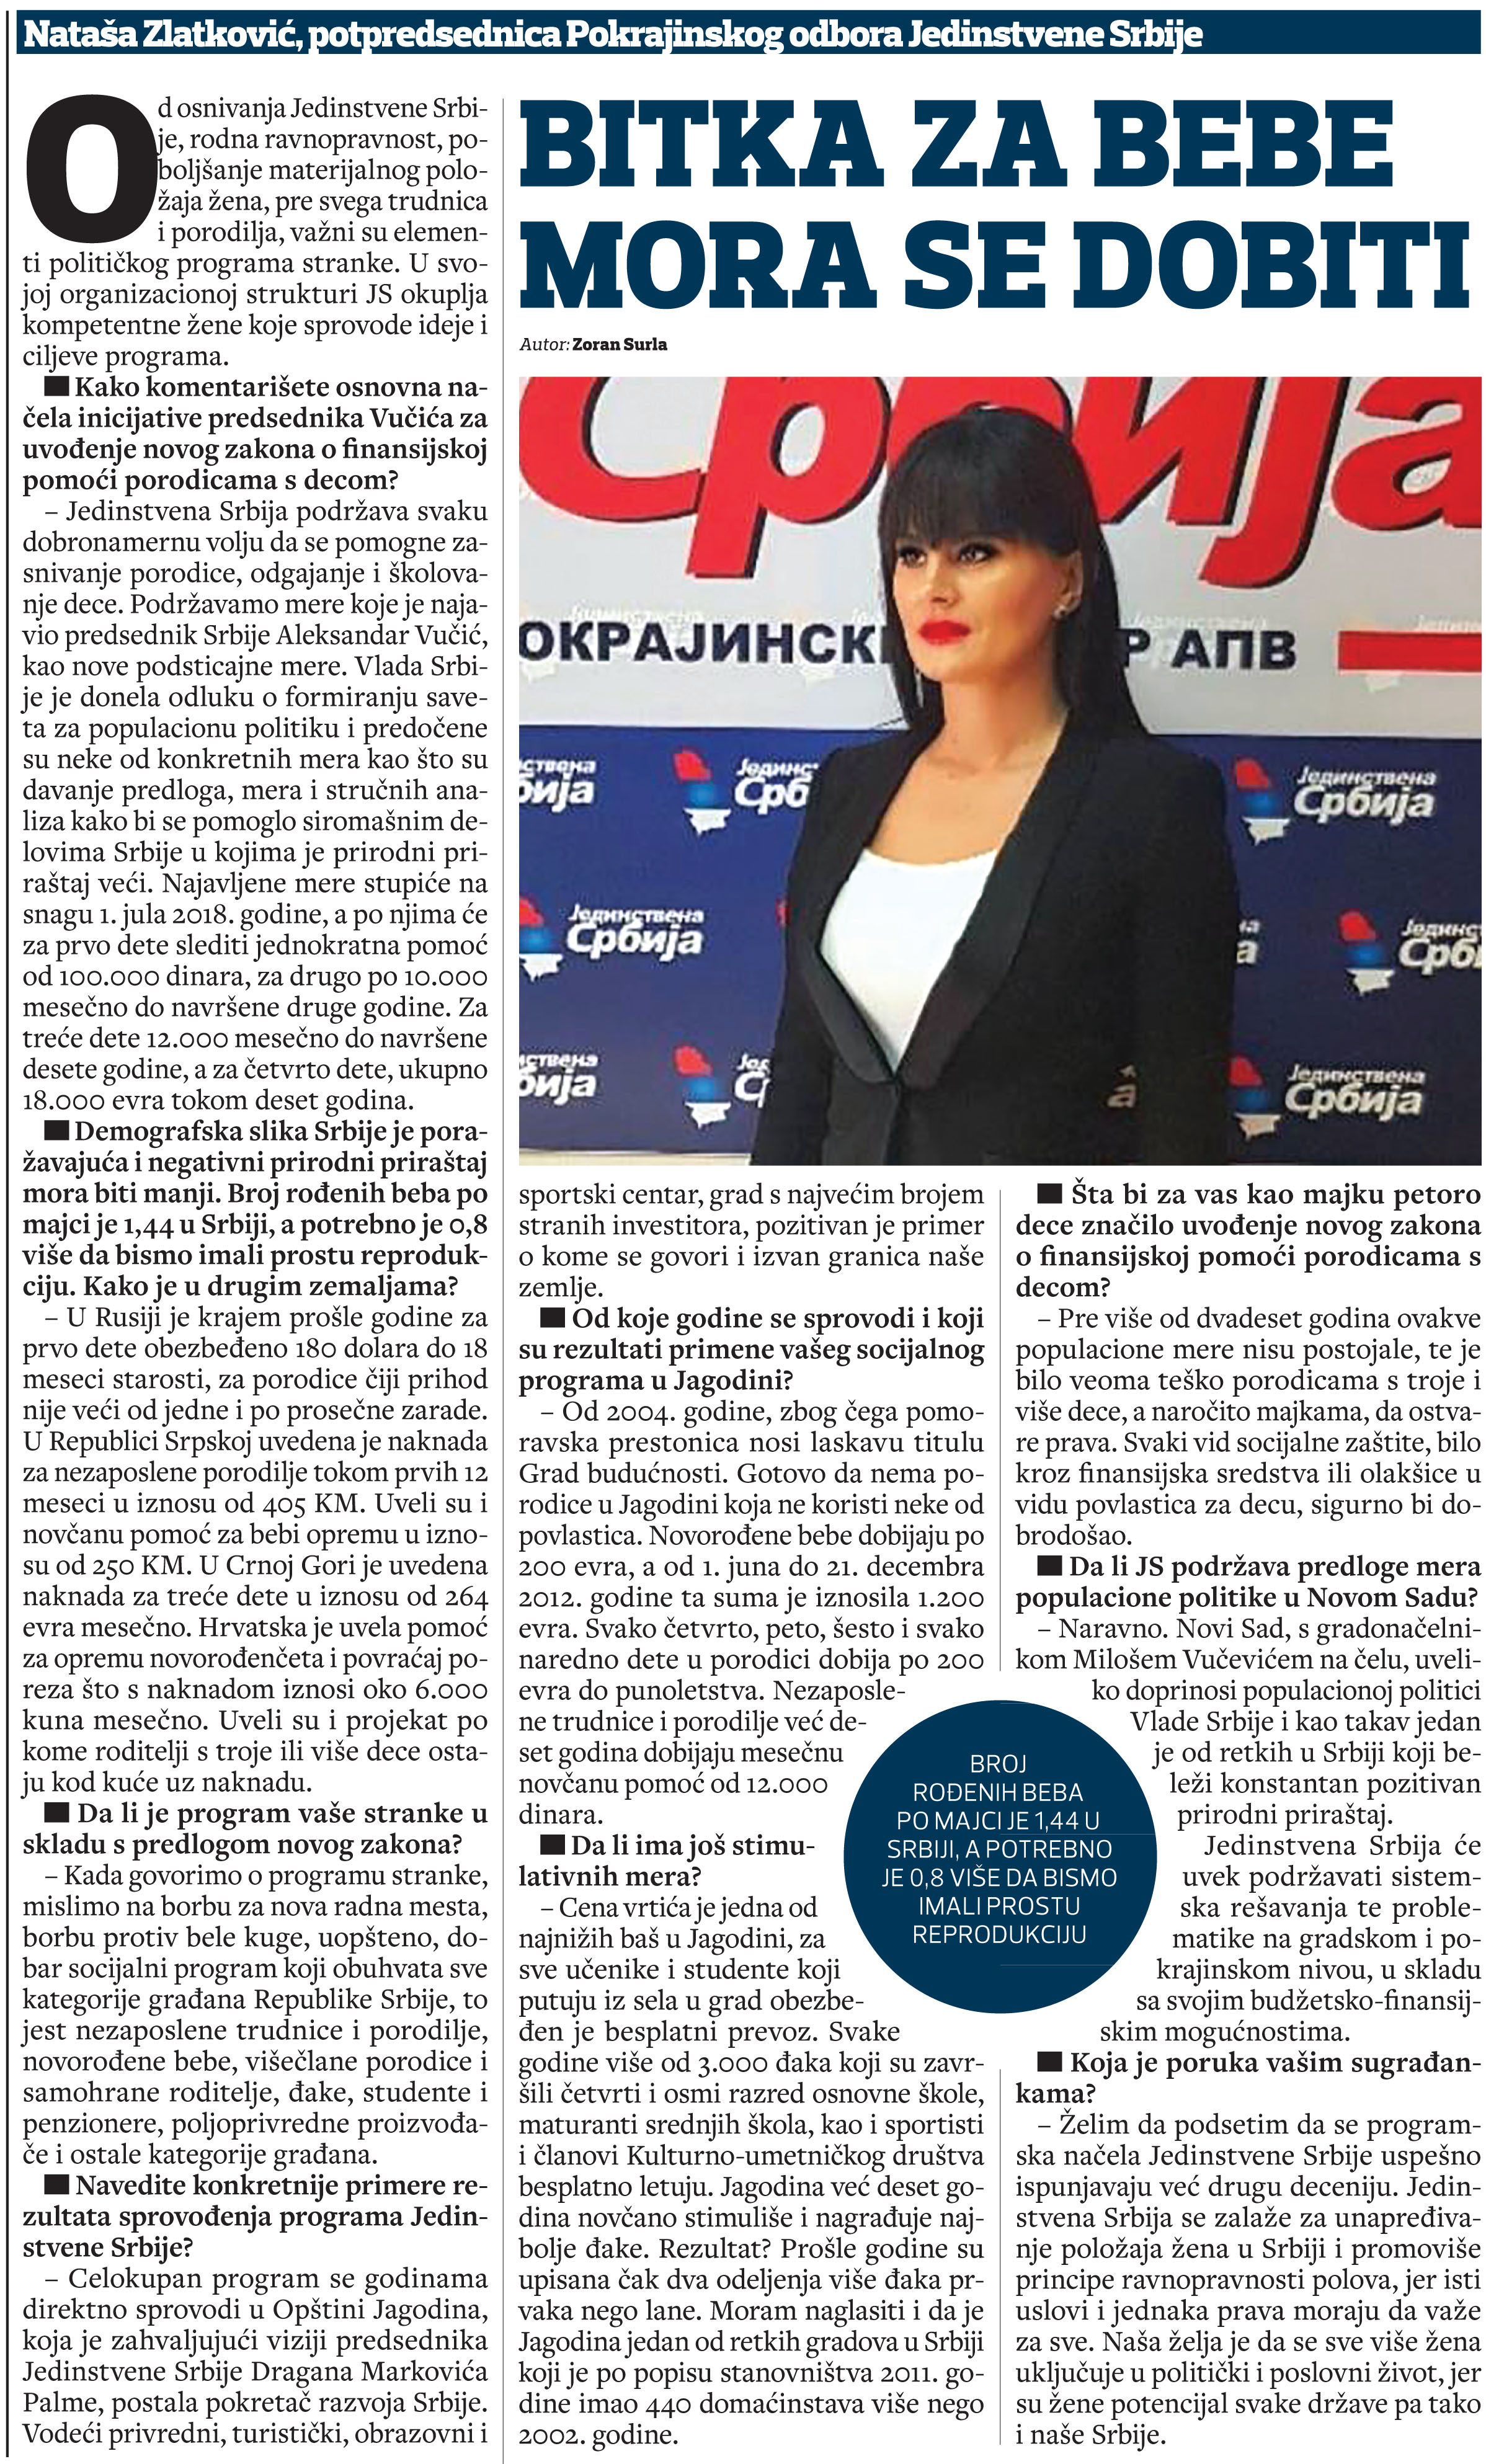 NS reporter 2